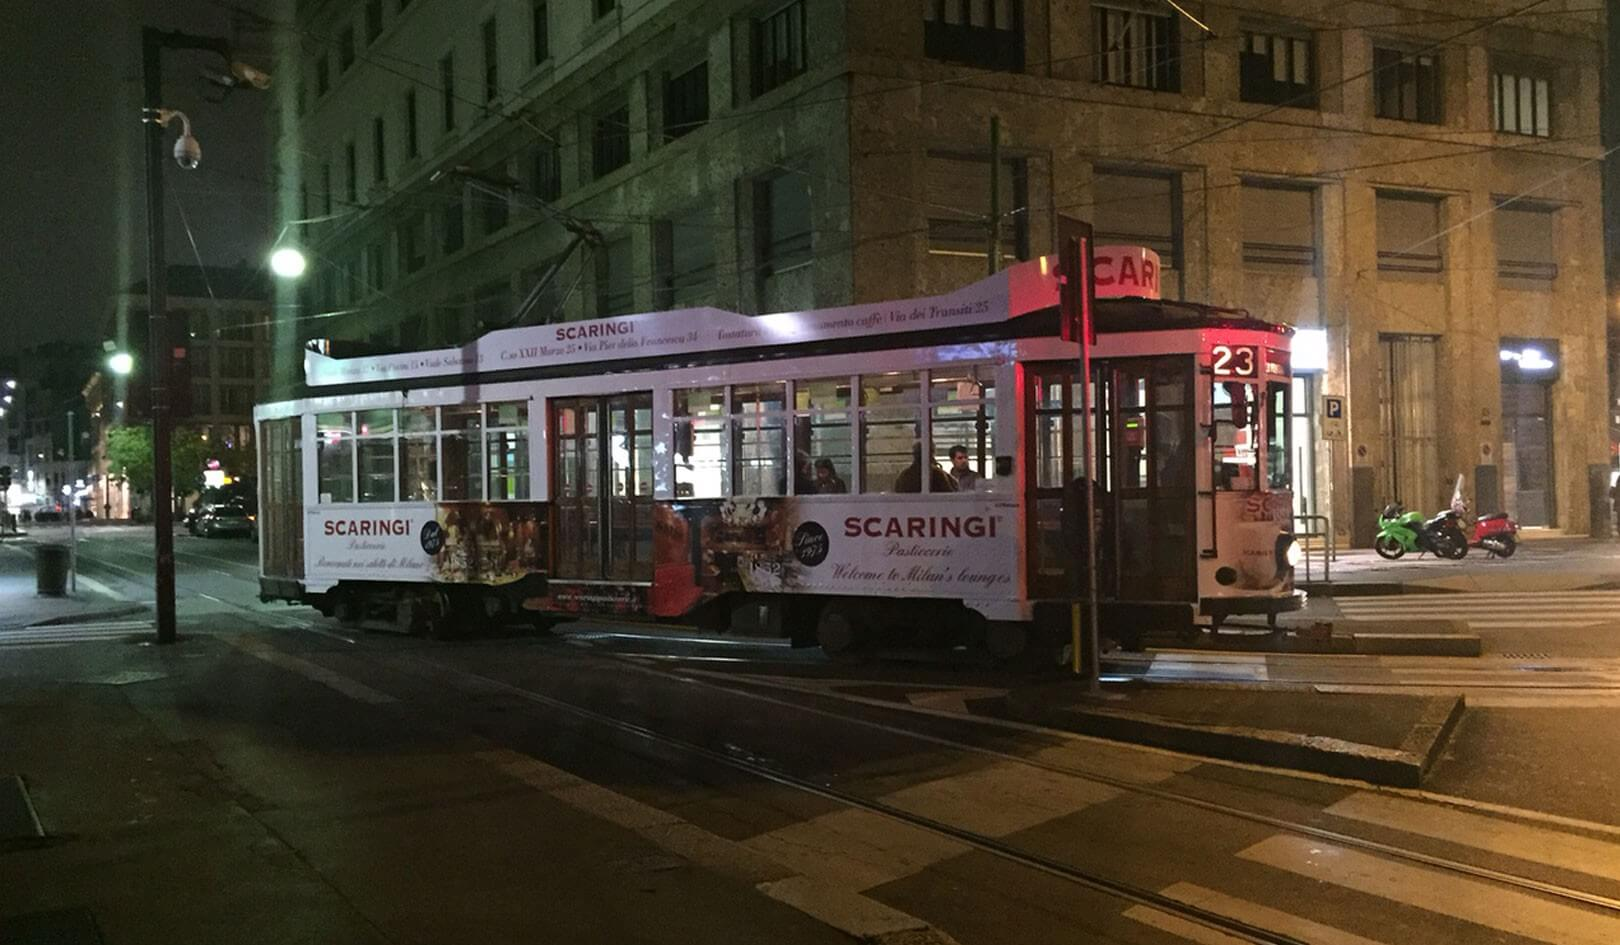 Advertising, decorazione tram 2 casse IGP Decaux